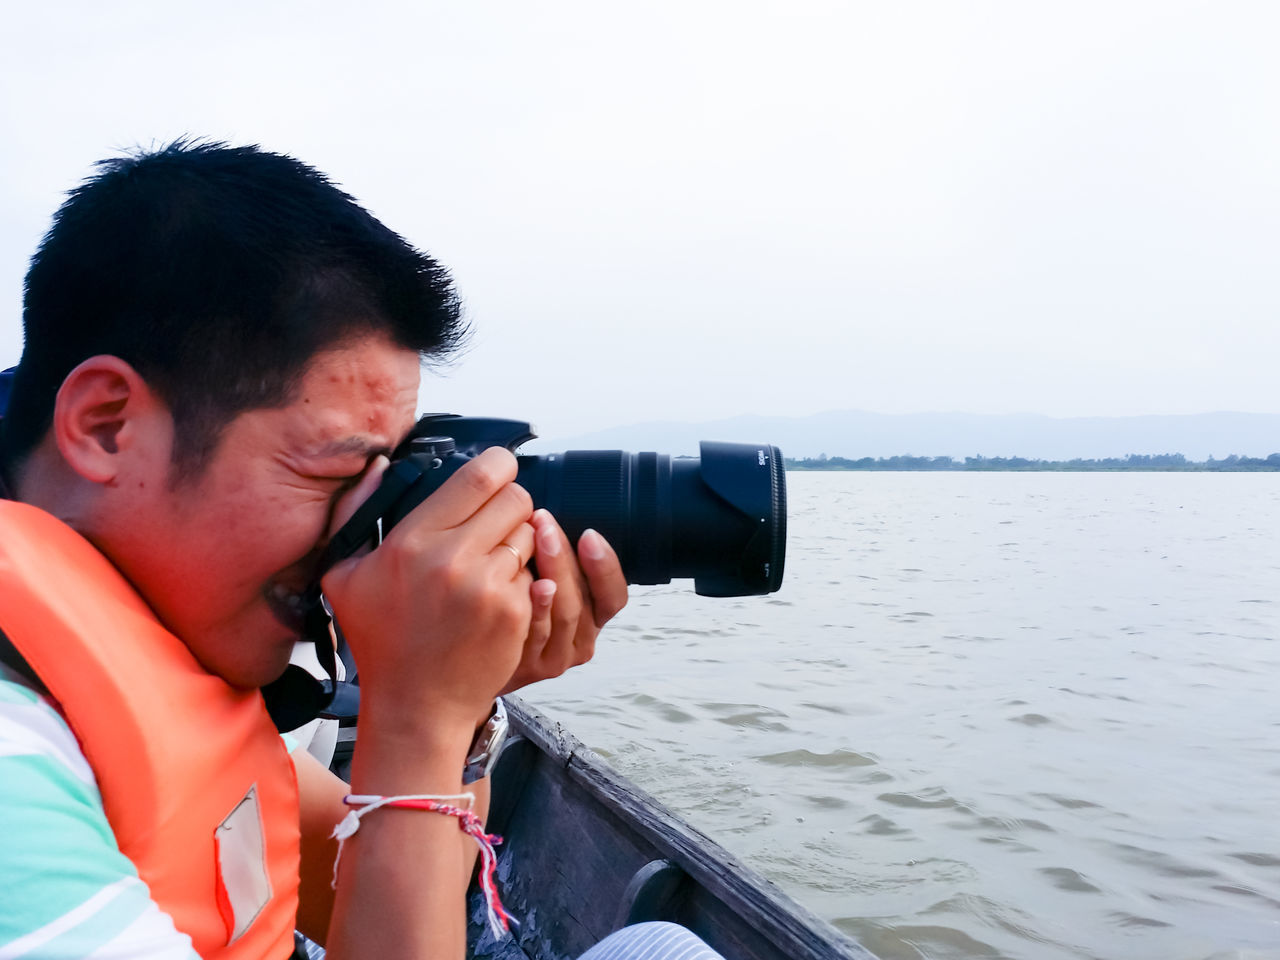 Travel photography. Photography Themes Water Holding Men Photographing Camera - Photographic Equipment Leisure Activity Outdoors People Nature Day Photography One Person SLR Camera Vacation Travel Thailandtravel Relax Weather Man Beauty In Nature Asian  Thailand Environment Portrait